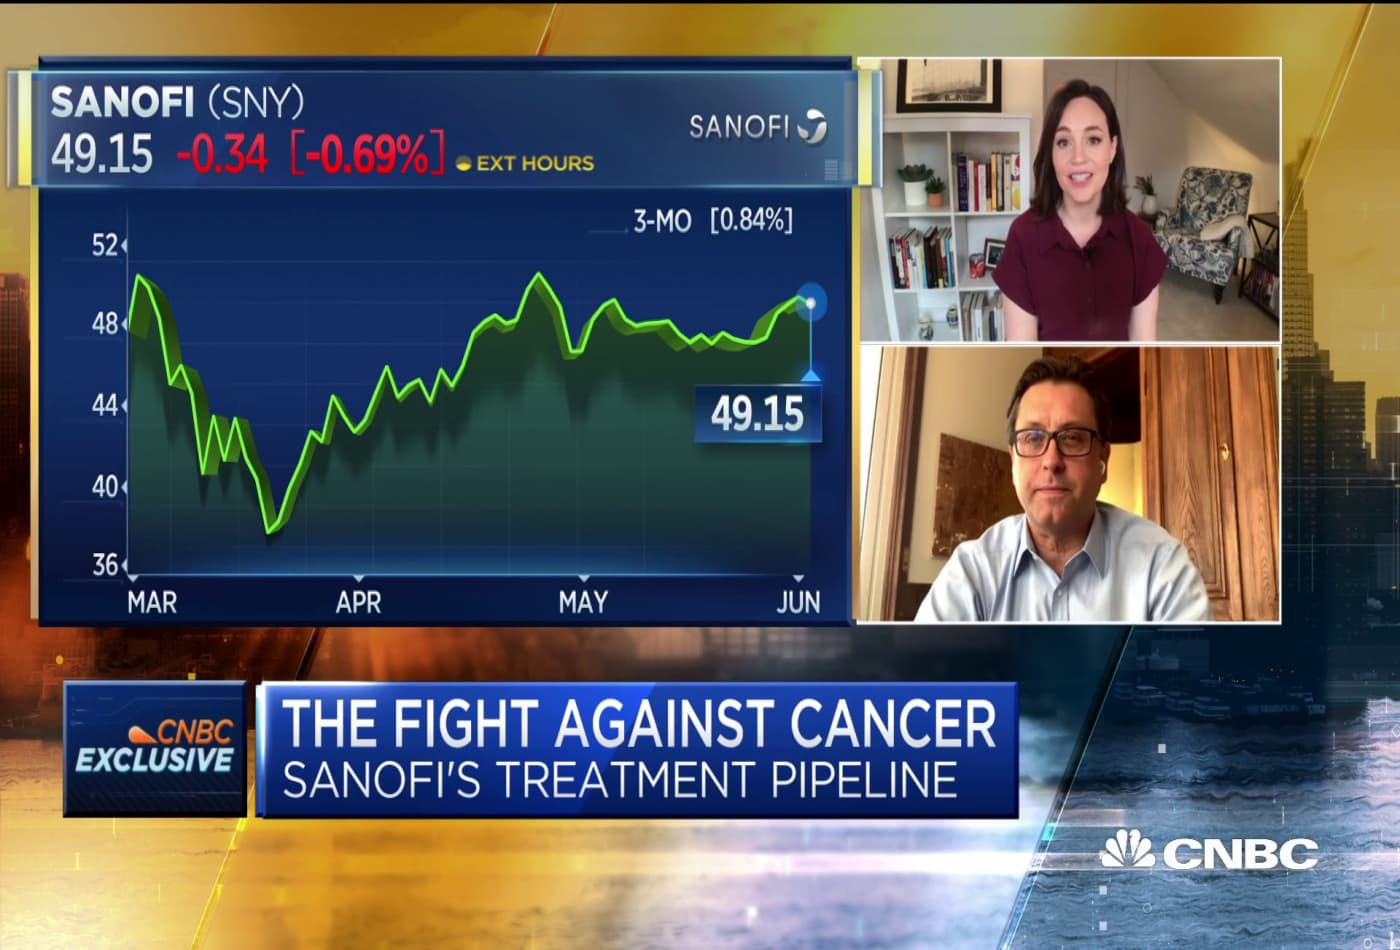 Sanofi CEO Paul Hudson on cancer research, Covid-19 vaccine and more